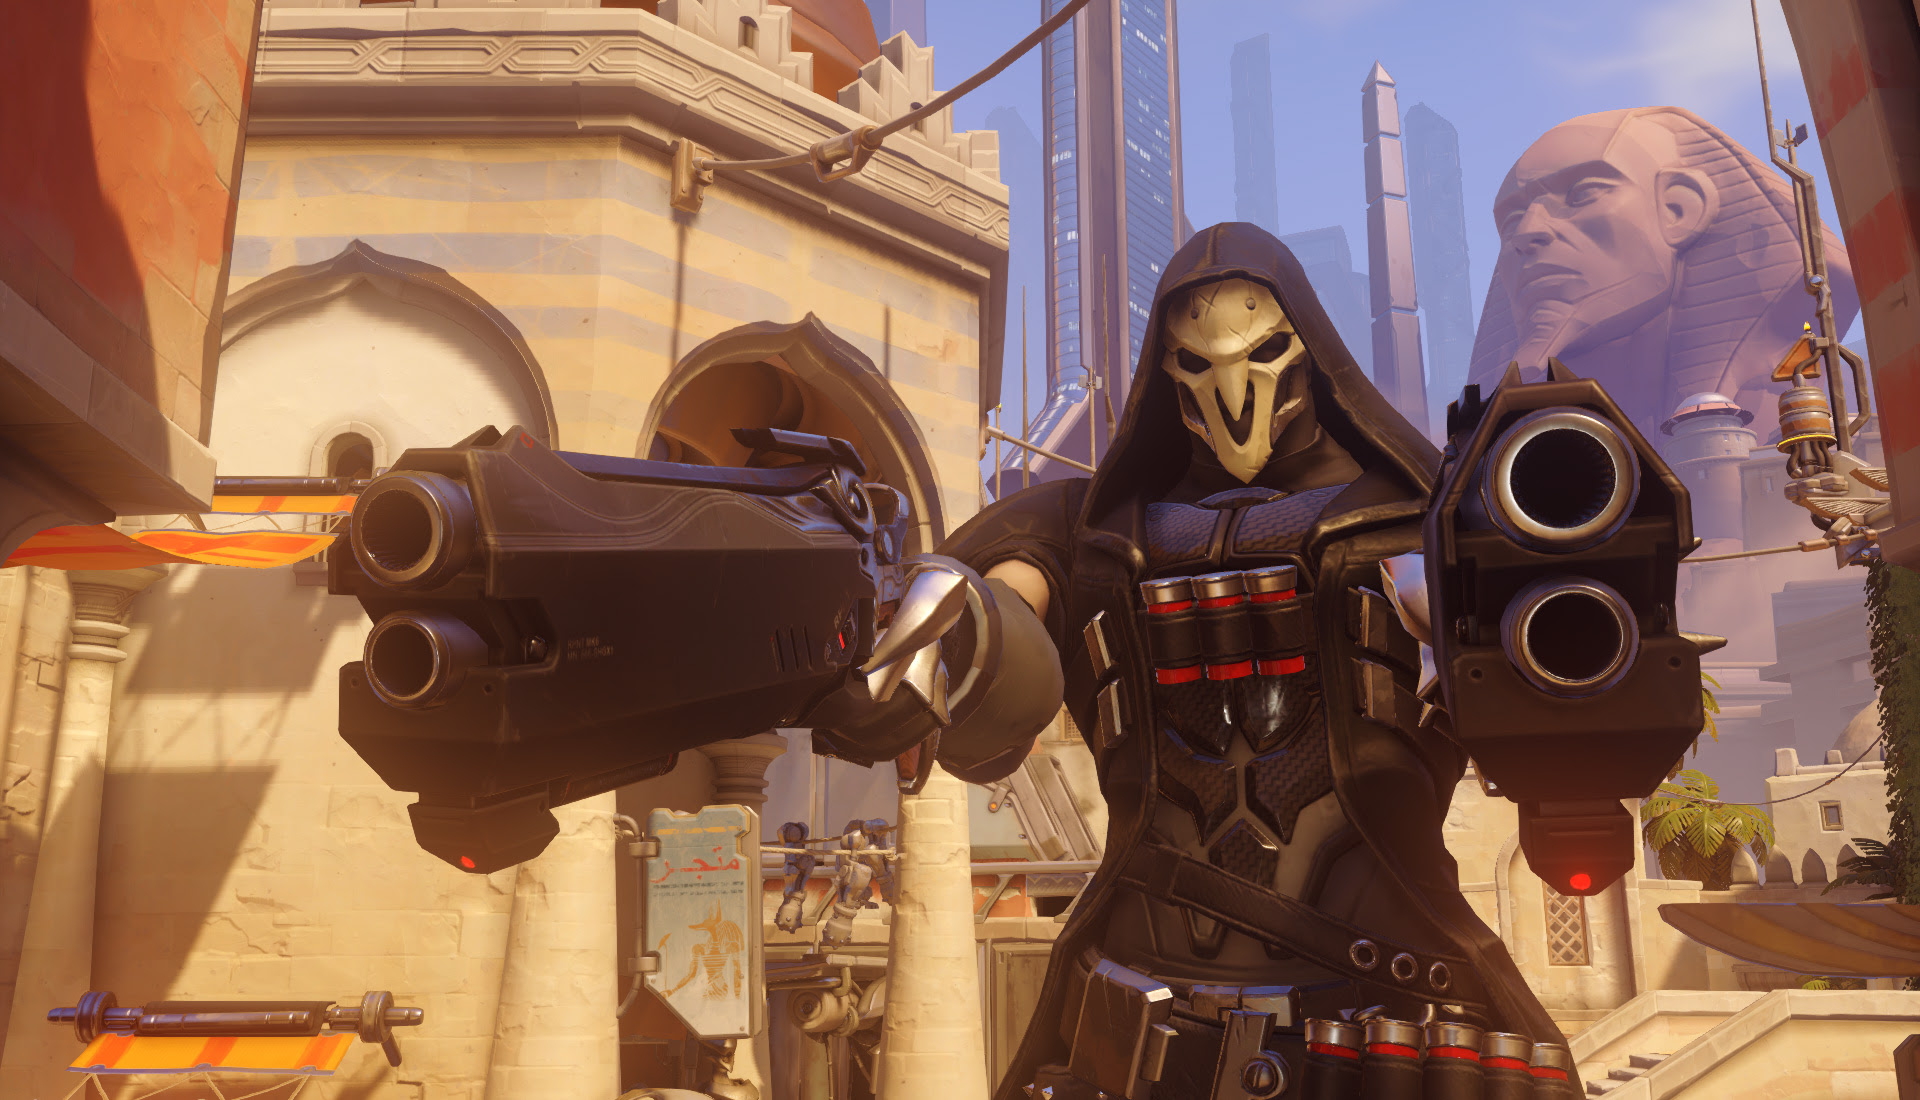 You've got character: Reaper screenshot